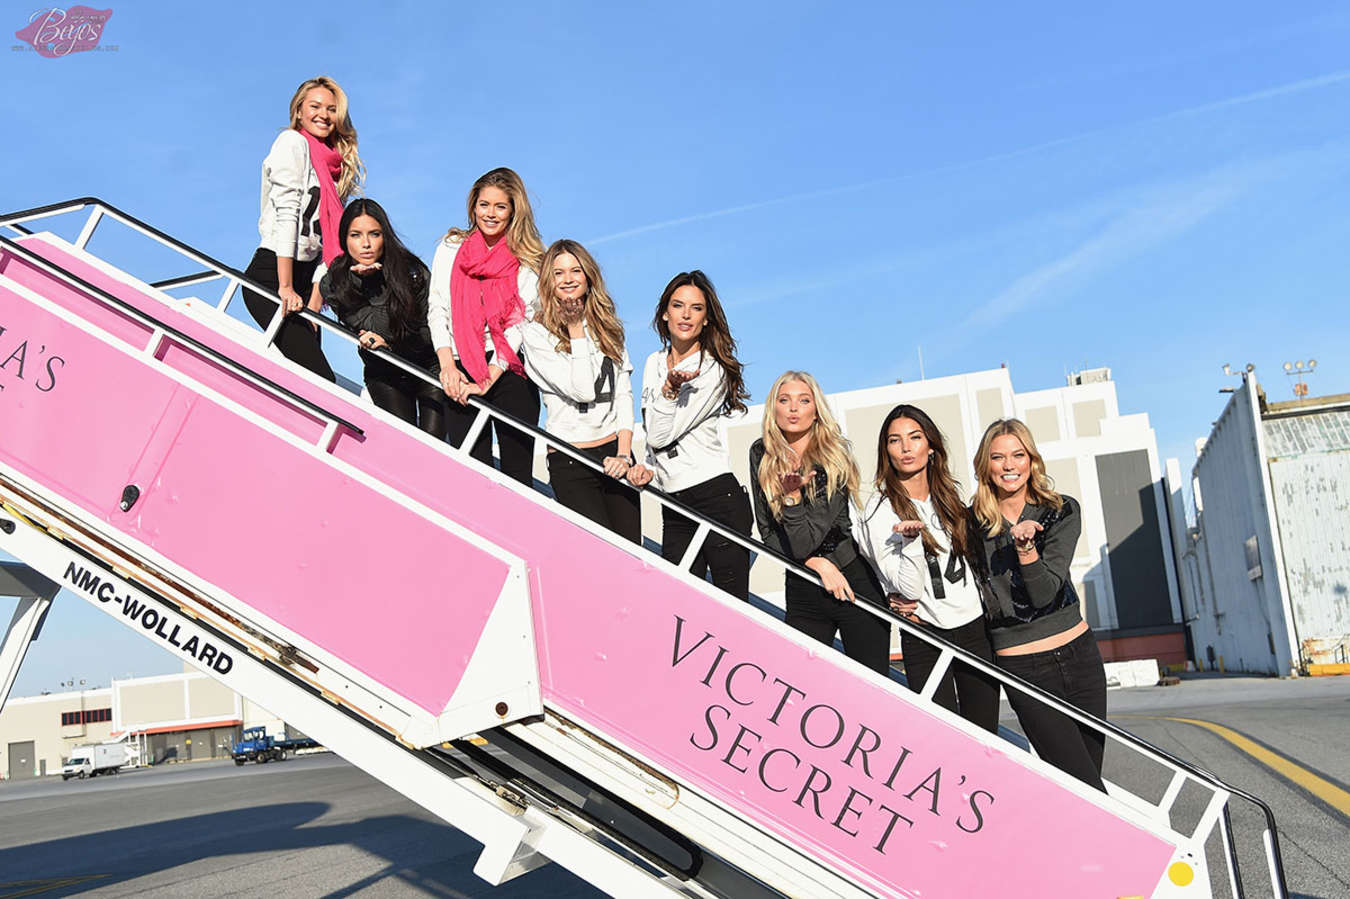 VS Angels - Departing For the London For 2014 Victoria's Secret Fashion Show